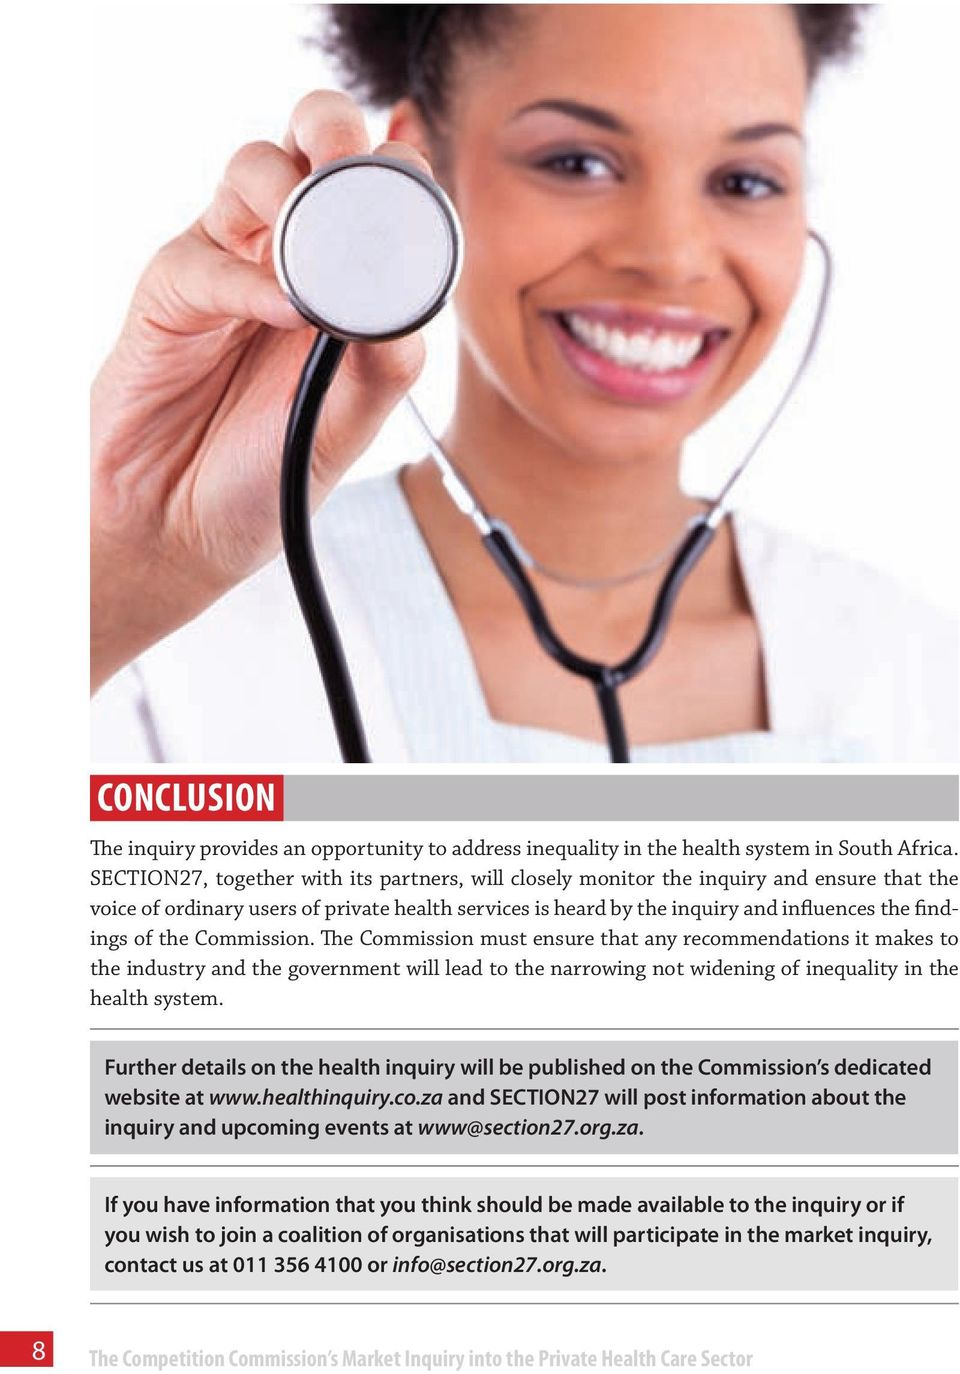 the Commission. The Commission must ensure that any recommendations it makes to the industry and the government will lead to the narrowing not widening of inequality in the health system.